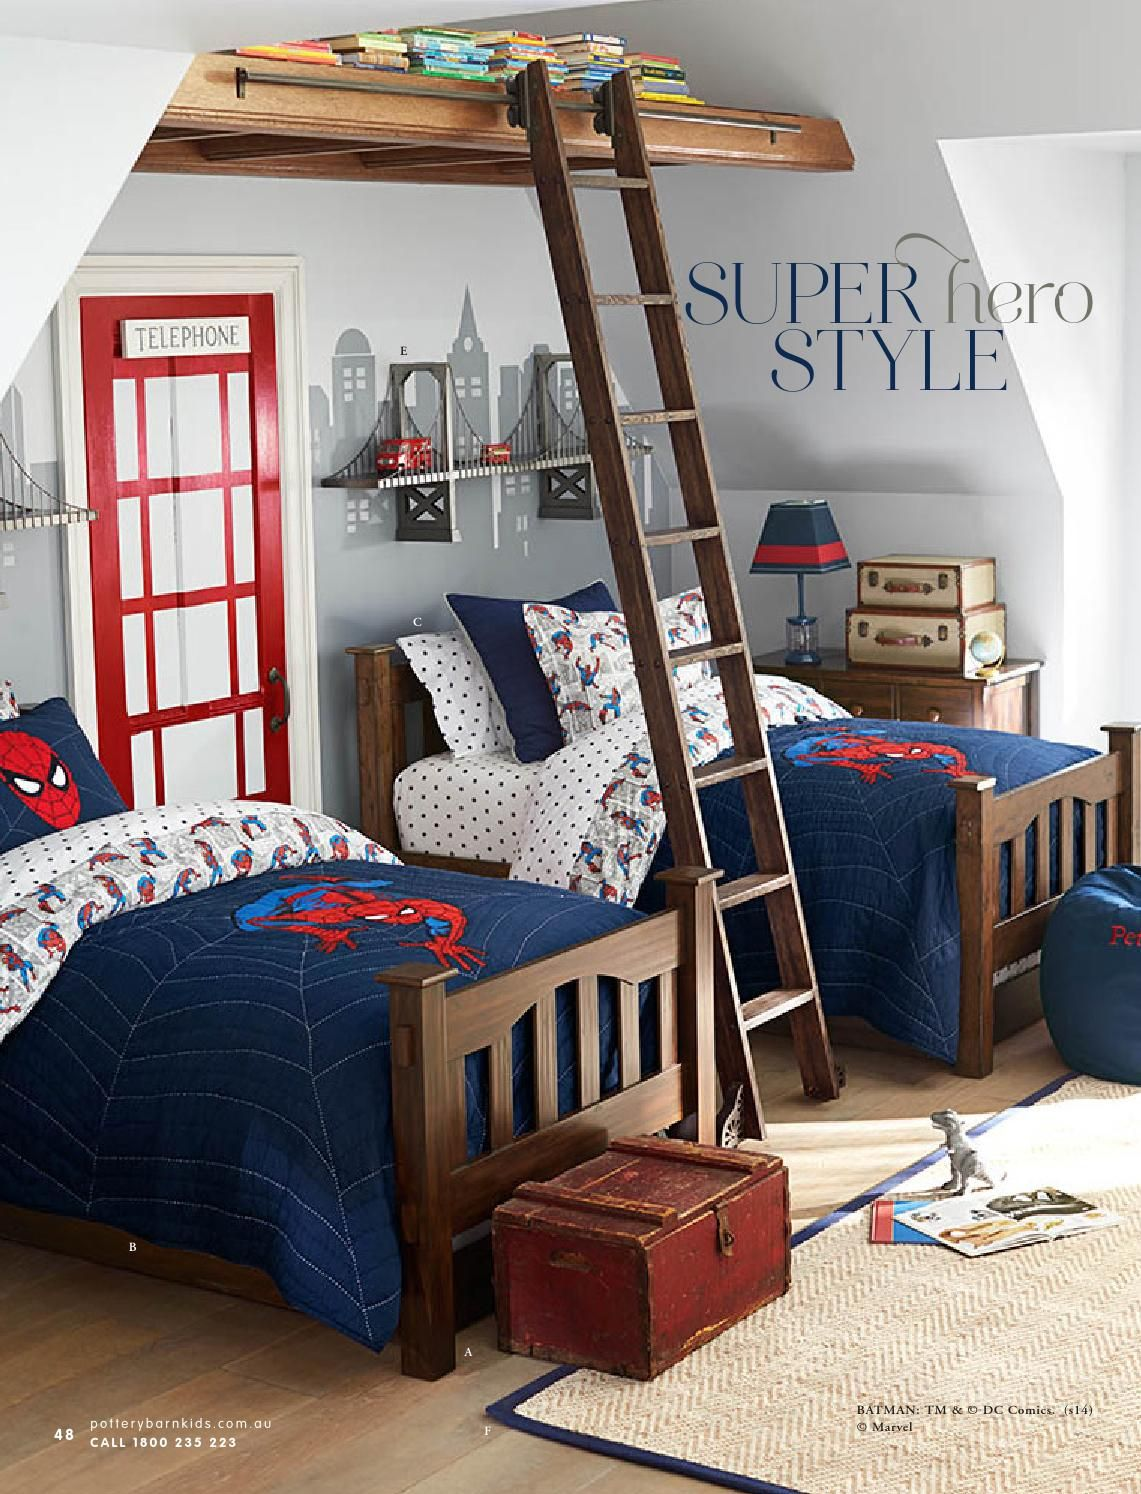 Pottery Barn Kids Australia Spring Catalogue 2014